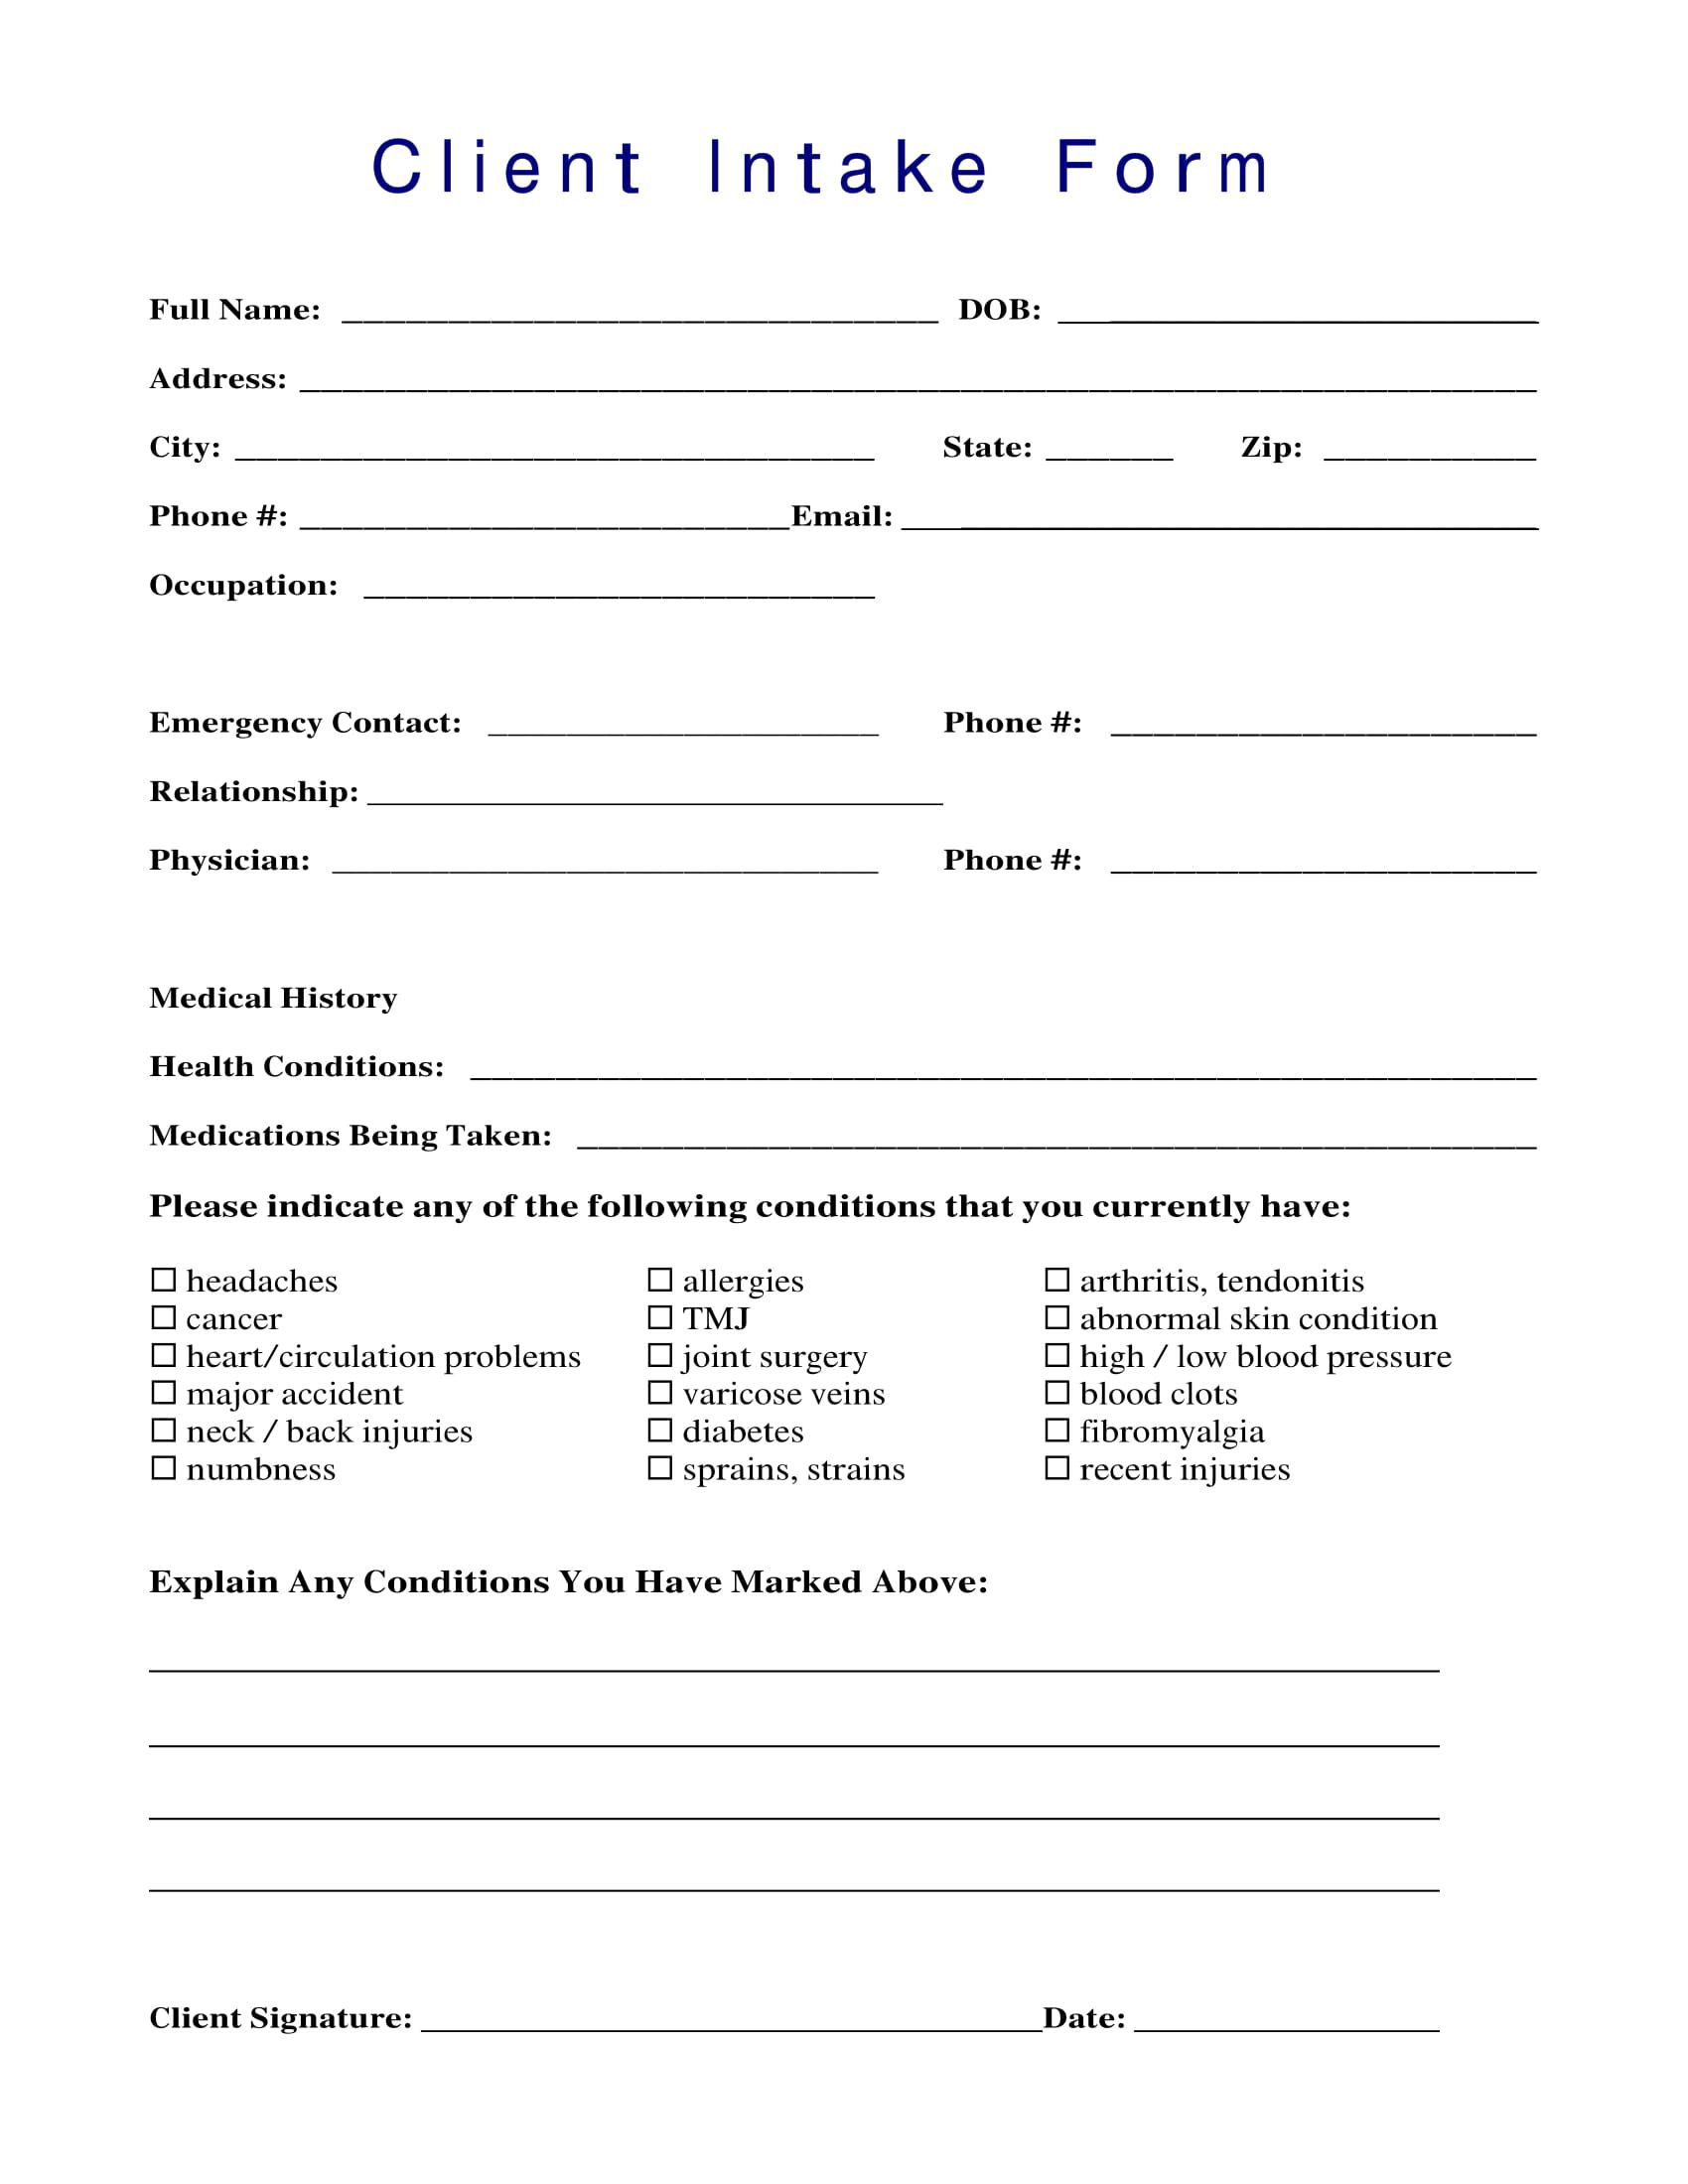 002 Marvelou Patient Intake Form Template Design  Word Client Excel PdfFull